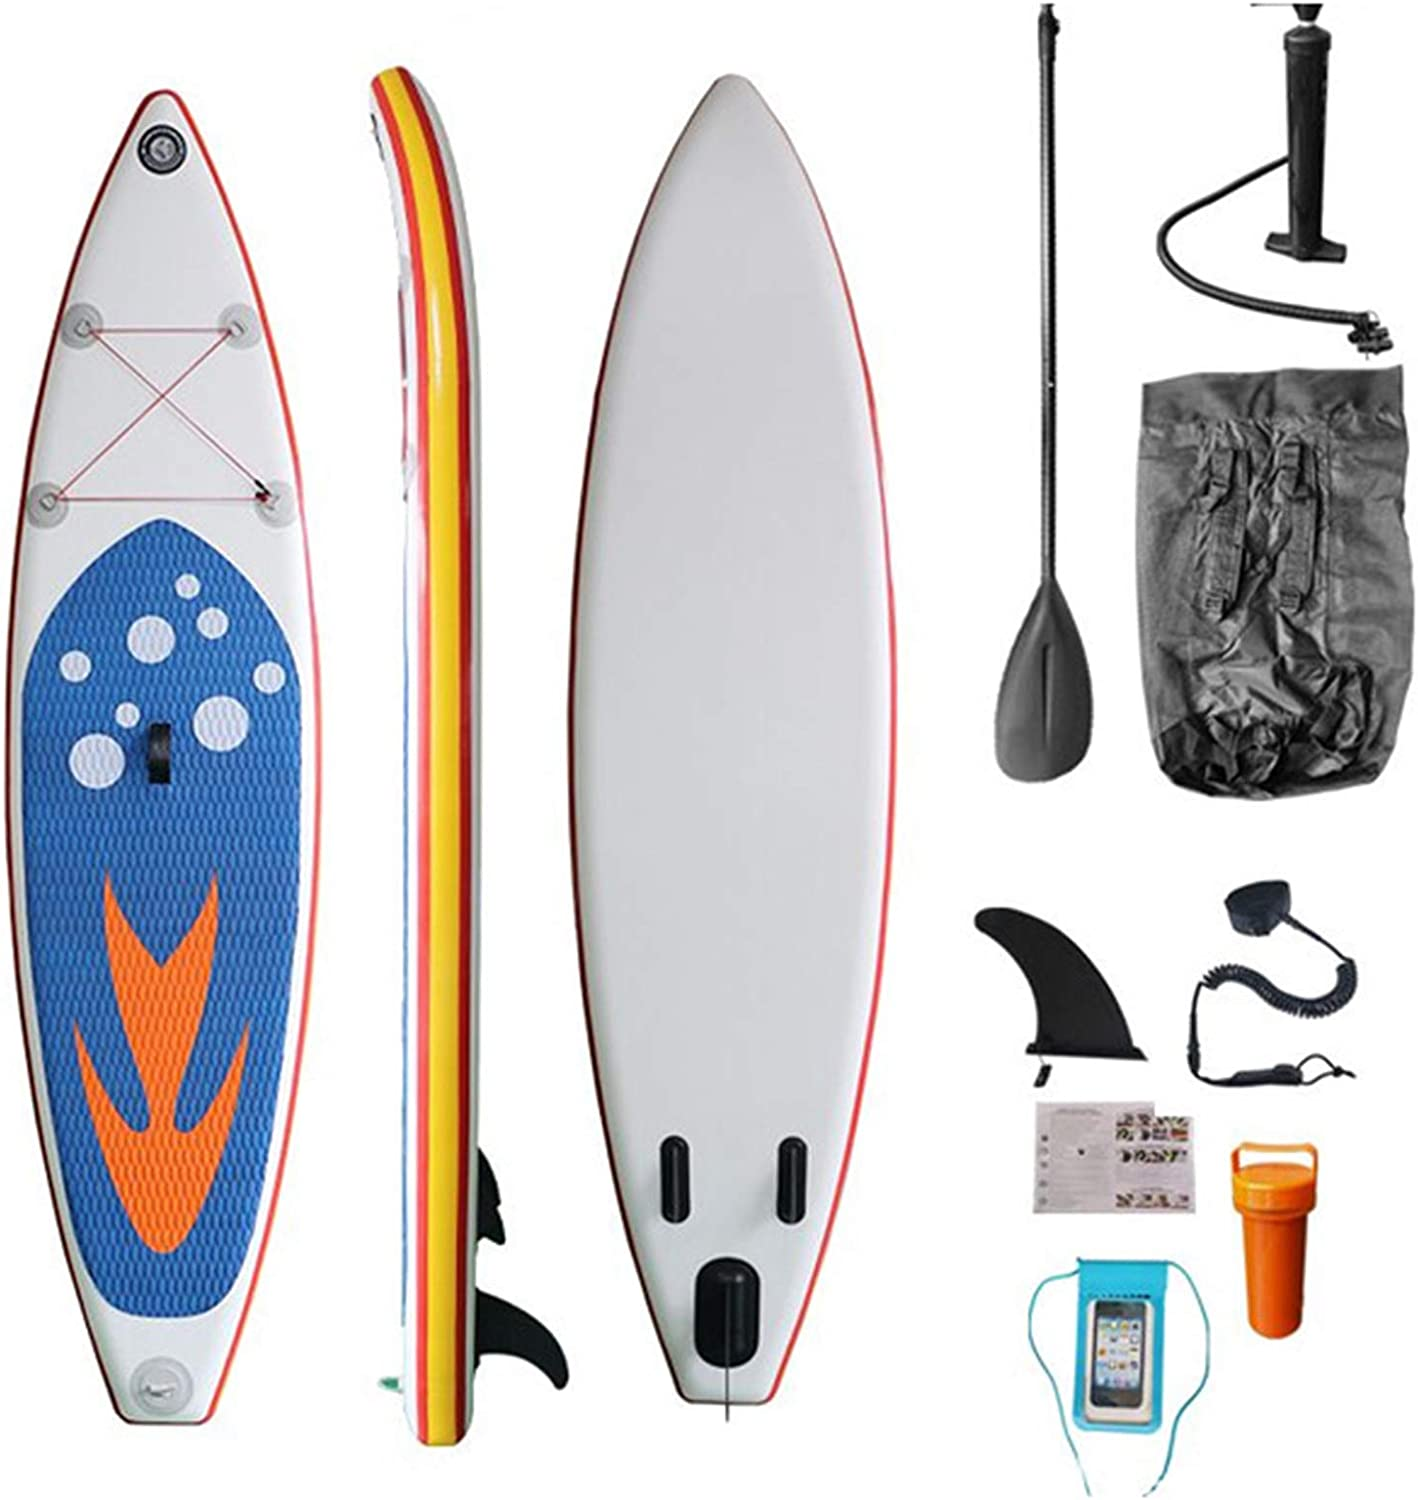 Inflatable Stand Up Paddle Board 305 Deck Non-Slip Fees free cm unisex with Isup